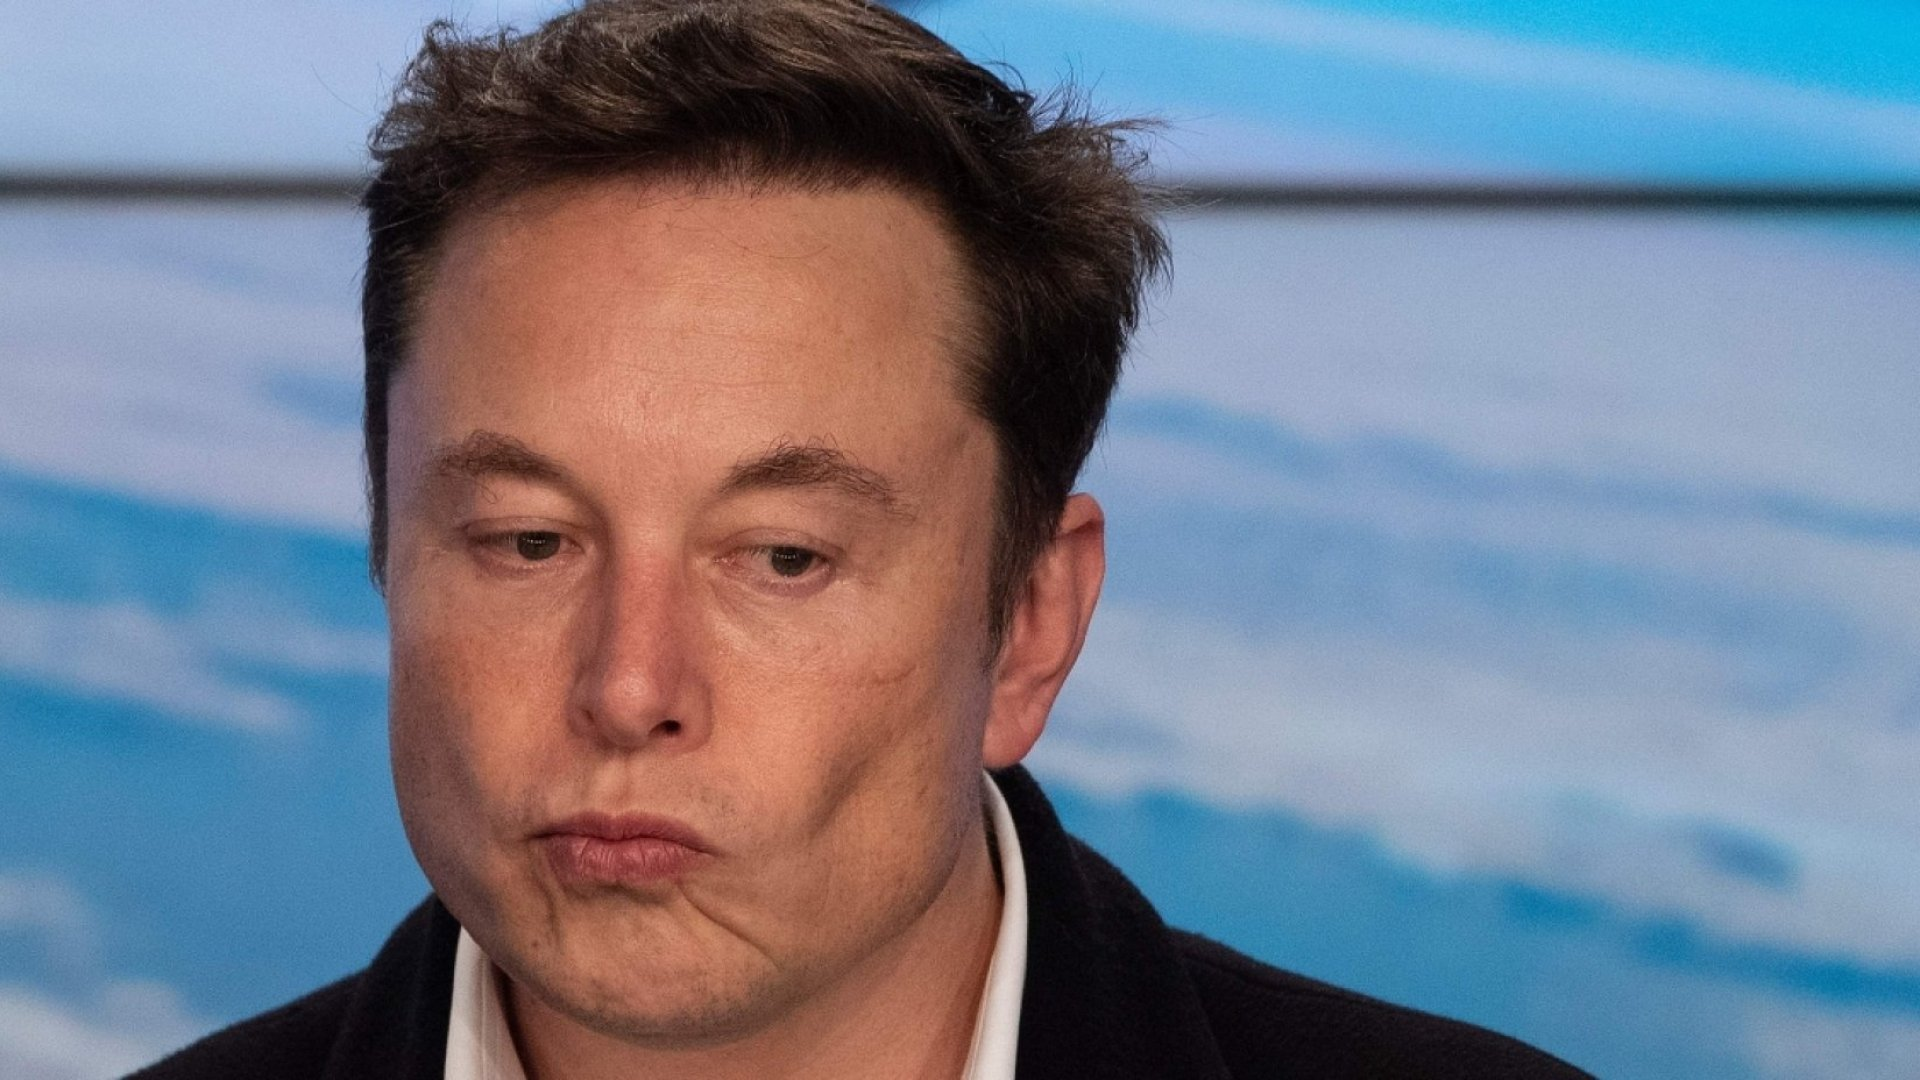 Marijuana Might Make Elon Musk More Creative but There's a Downside Risk